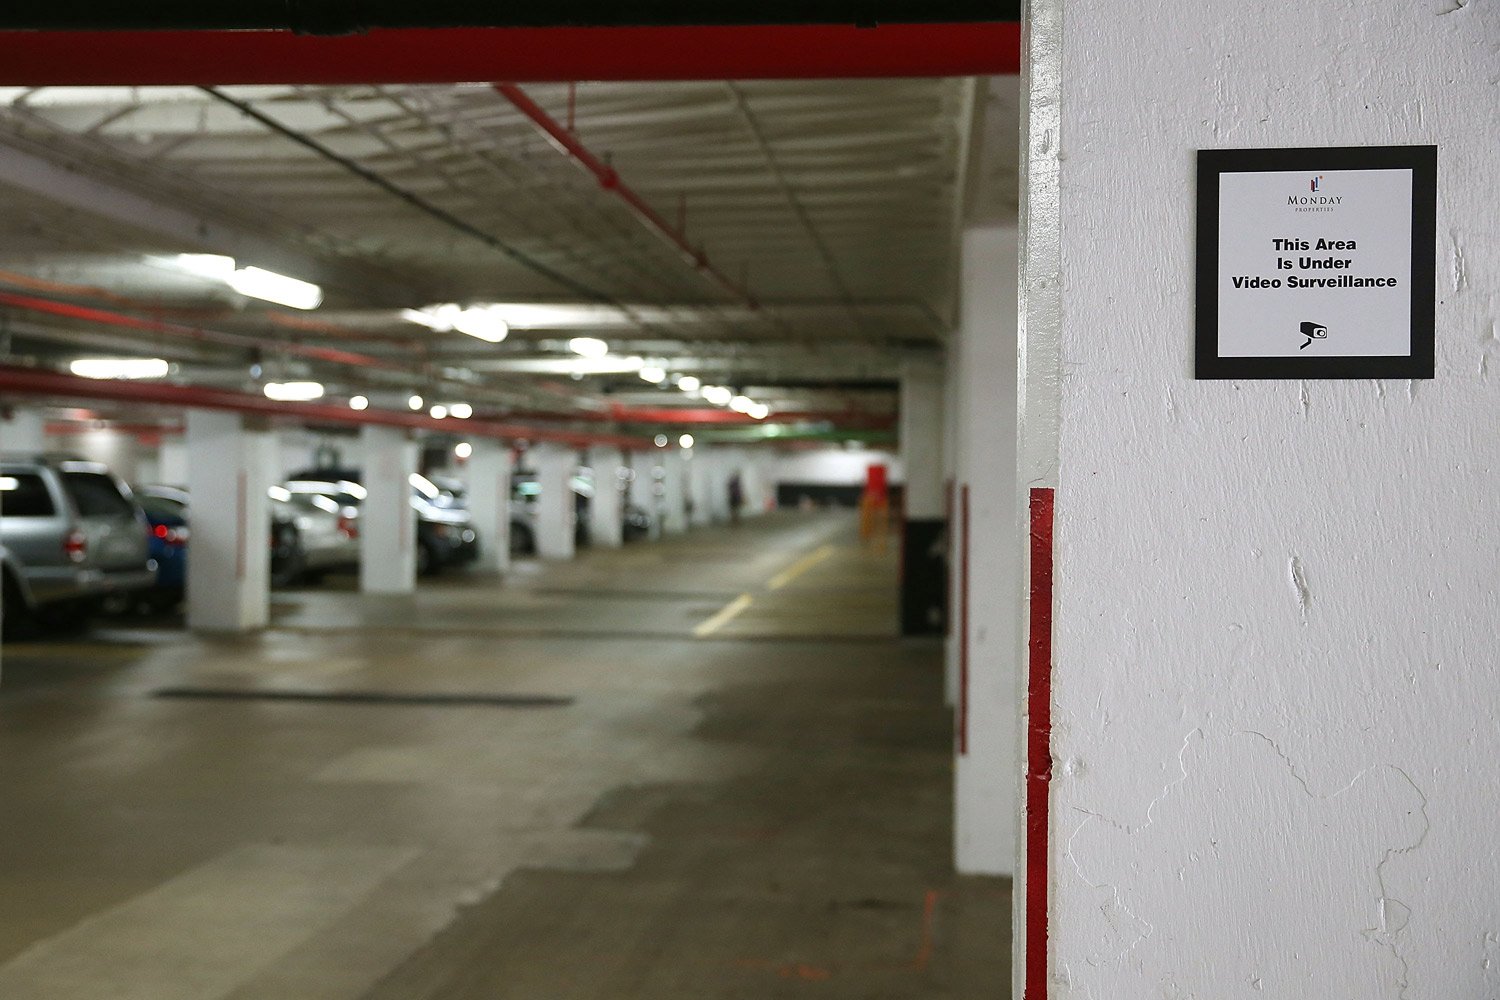 A view of the inside of the parking garage where Washington Post reporter Bob Woodward held late night meetings with Deep Throat, his Watergate source who later turned out to be Mark Felt, the FBI's former No. 2 official, August 27, 2013 in Arlington, Virginia.